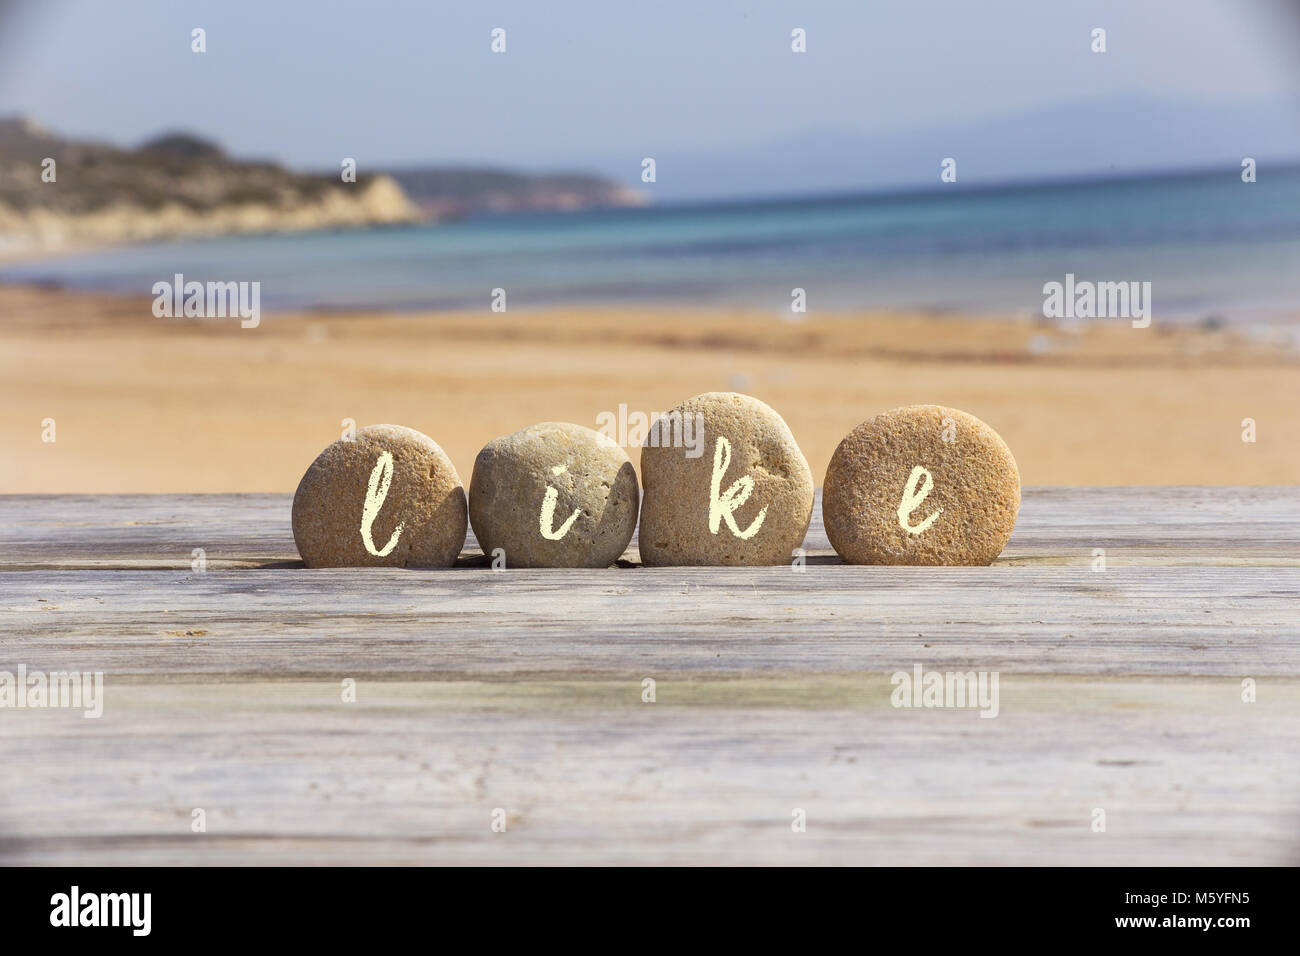 Sign like on top of sea rocks ,balancing by Pacific ocean - Stock Image